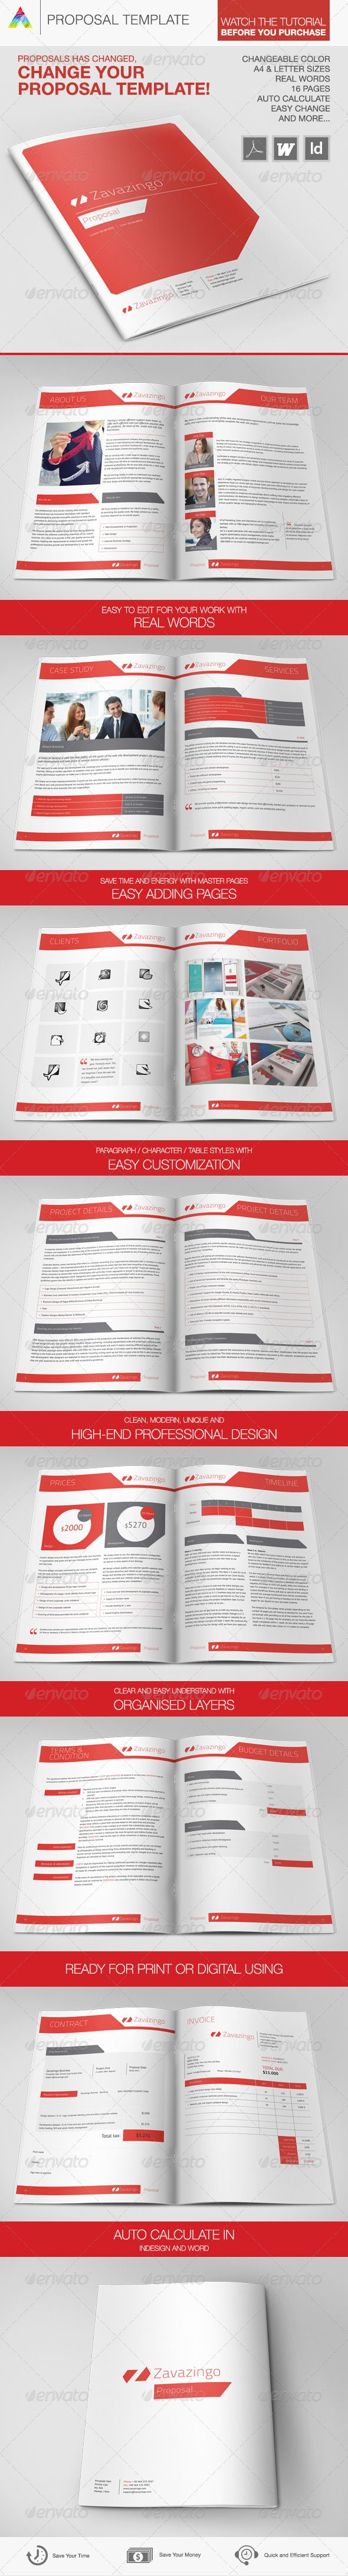 Proposal Template, This is a modern & proposal, high-end professional and very usefull template for a Buisness Proposal Template. It comes in two paper sizes and format including US Letter, A4, Indesign and Word. Completely editable – Print Ready – Easy texts replacements. Auto calculate in Indesign and office word.